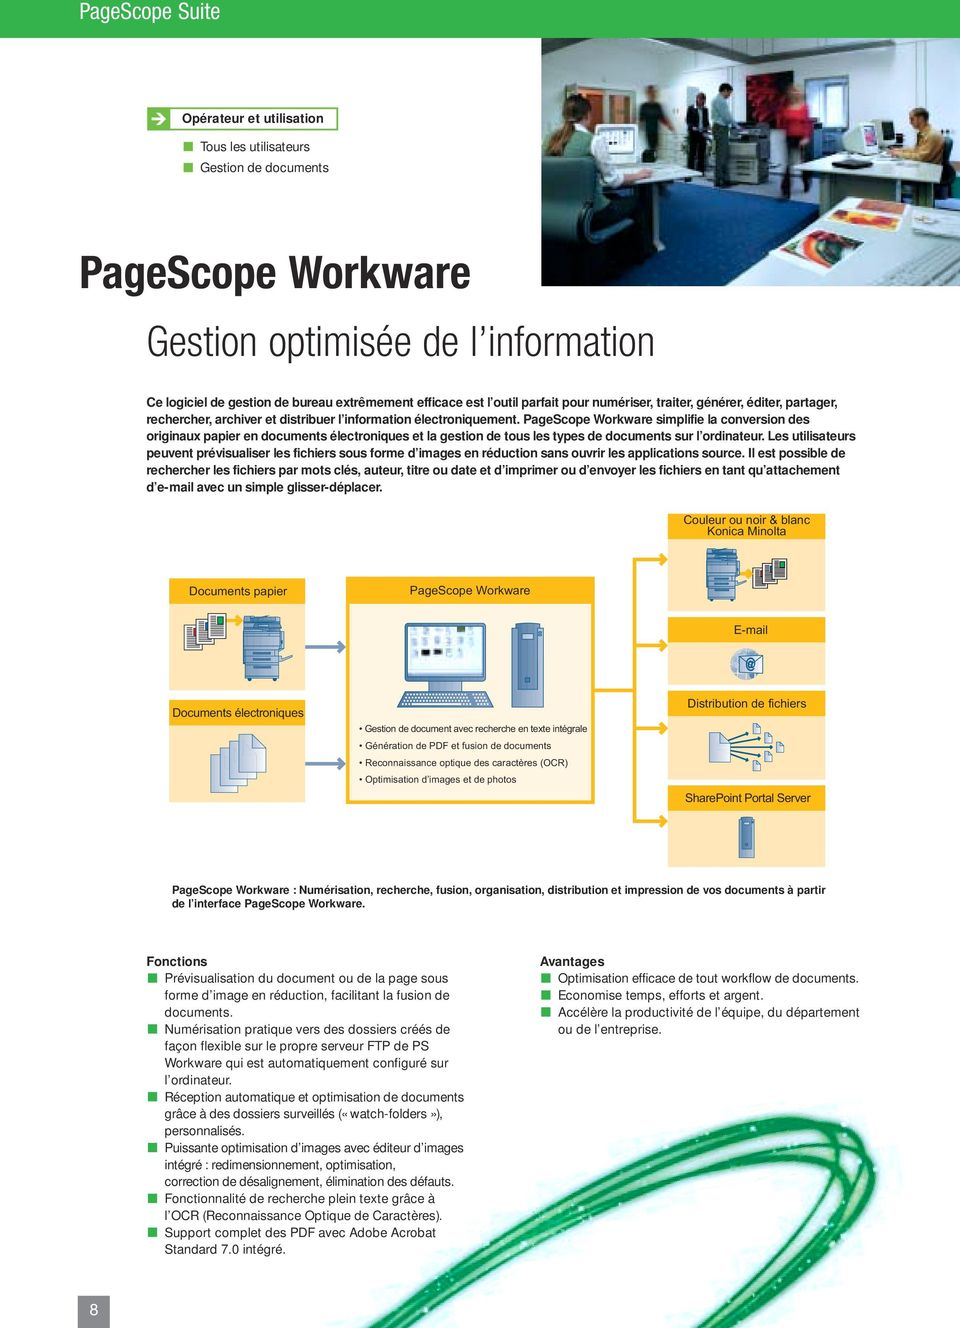 PageScope Workware simplifie la conversion des originaux papier en documents électroniques et la gestion de tous les types de documents sur l ordinateur.